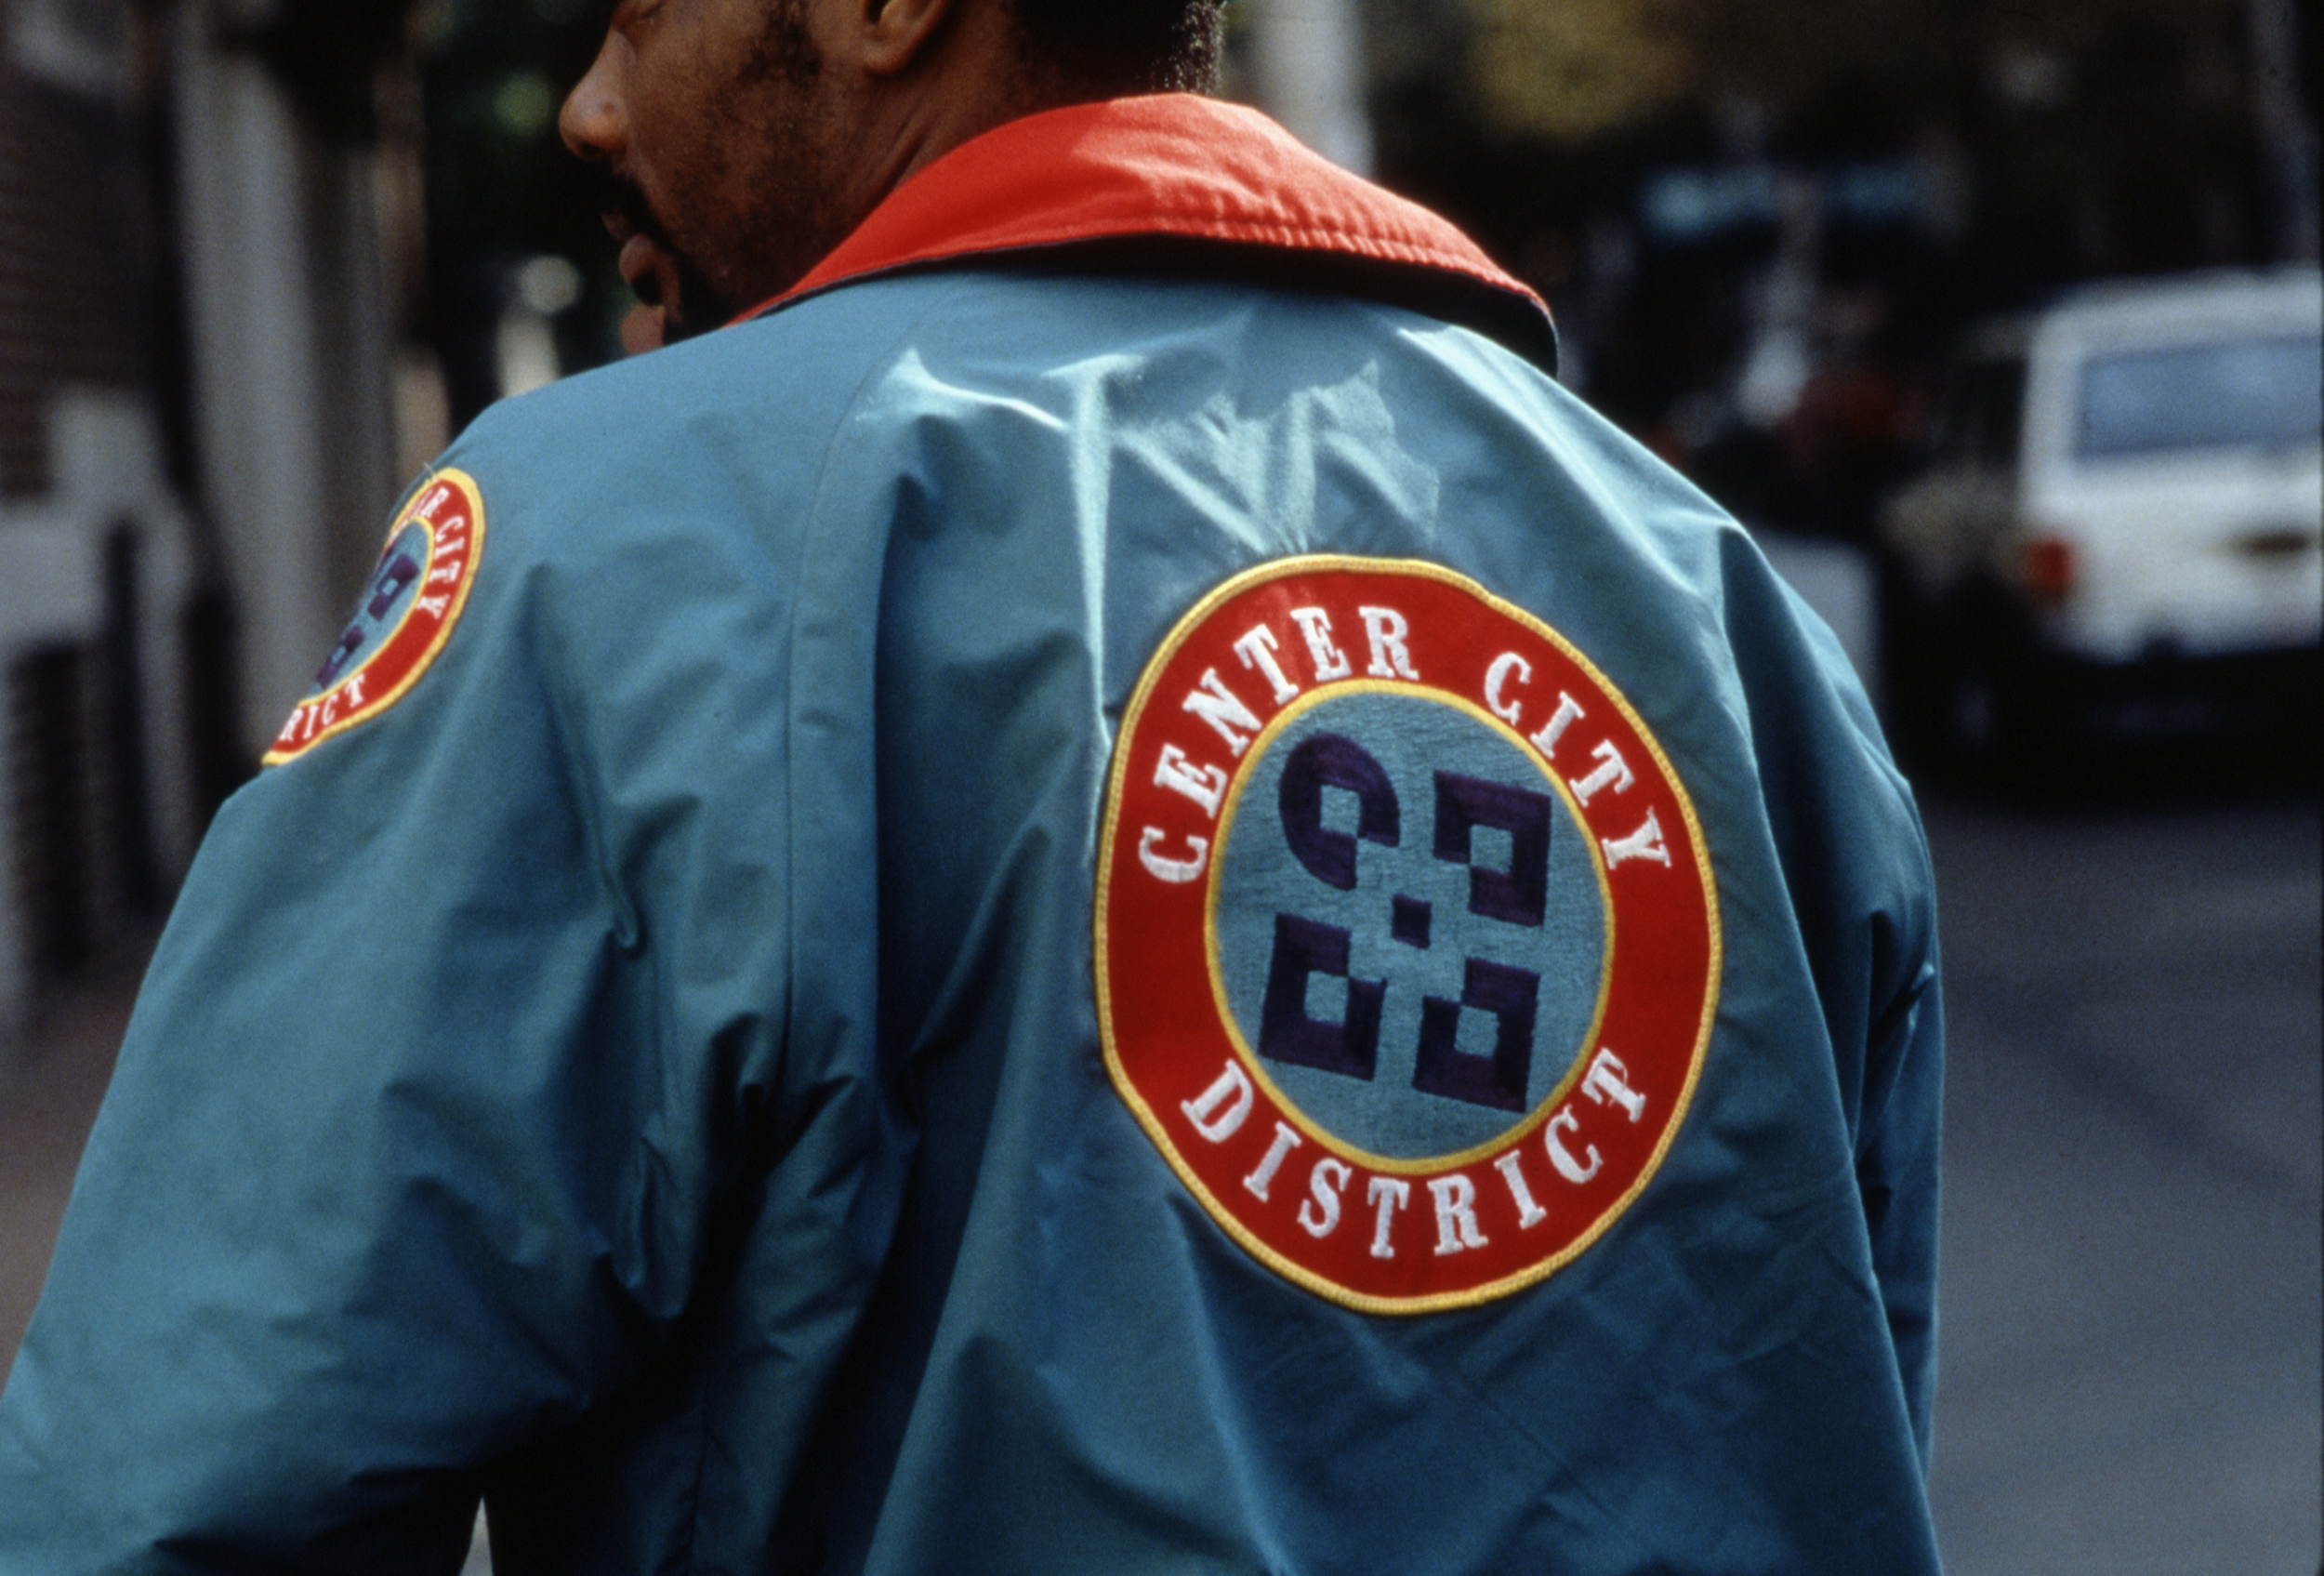 Center City District's logotype applied to jacket